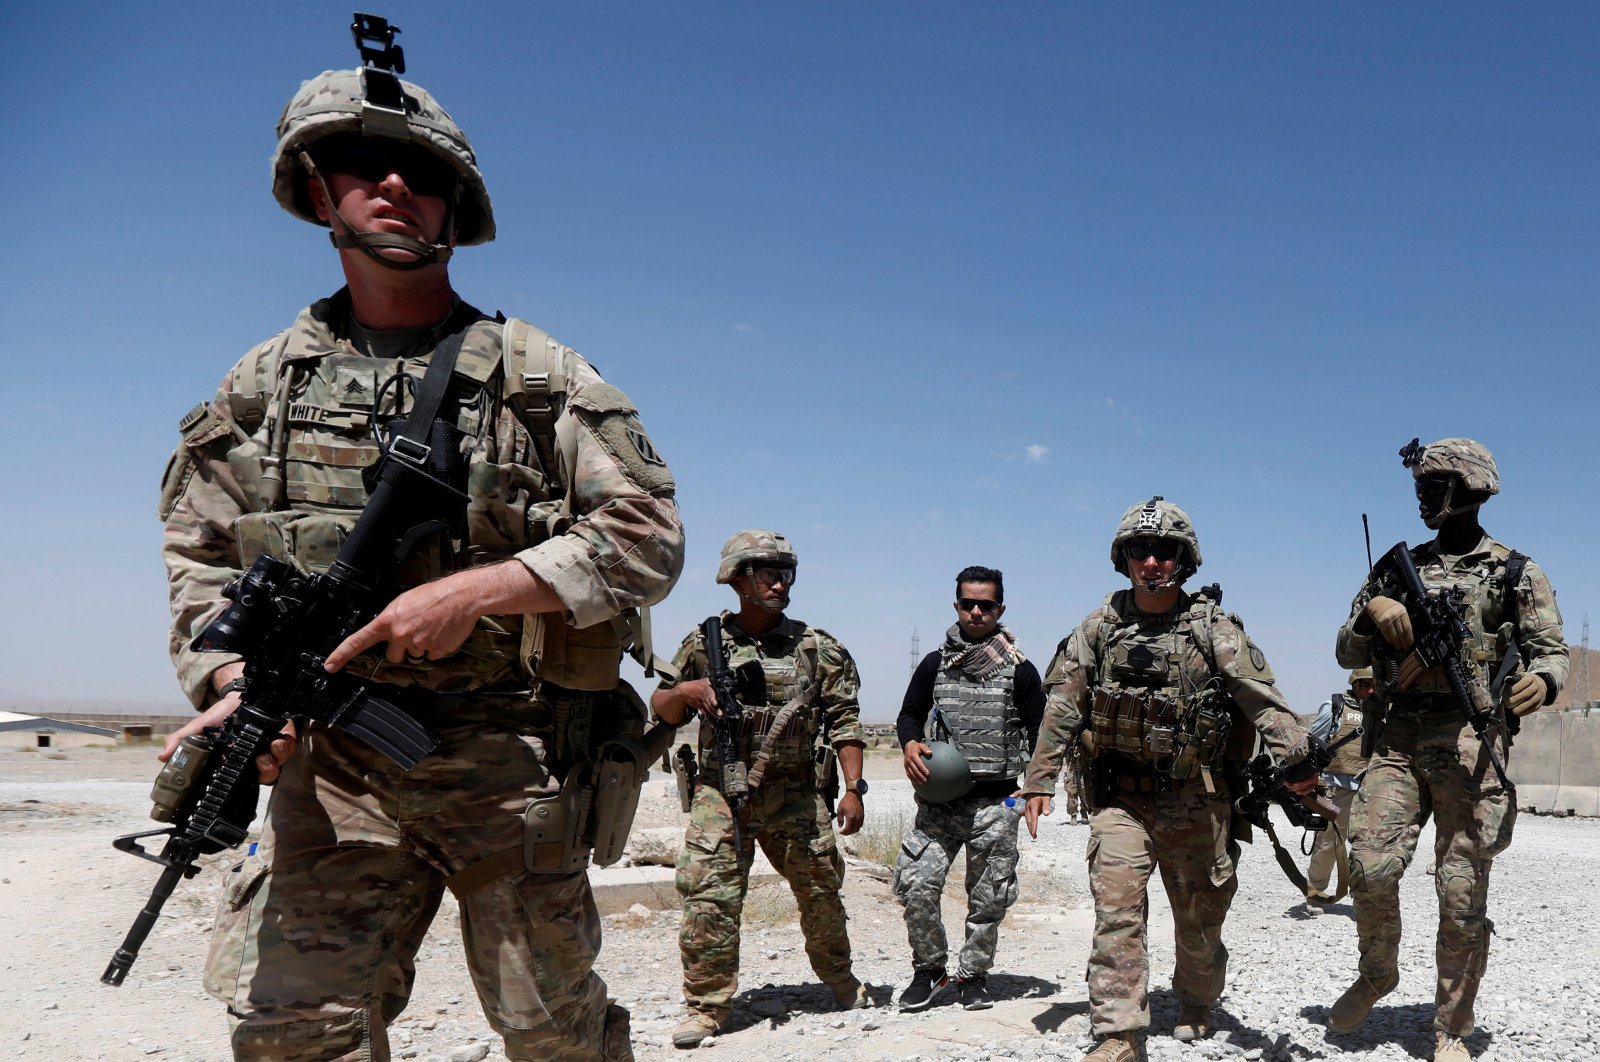 U.S. troops patrol at an Afghan National Army (ANA) Base in Logar province, Afghanistan on Aug. 7, 2018. (Reuters Photo)